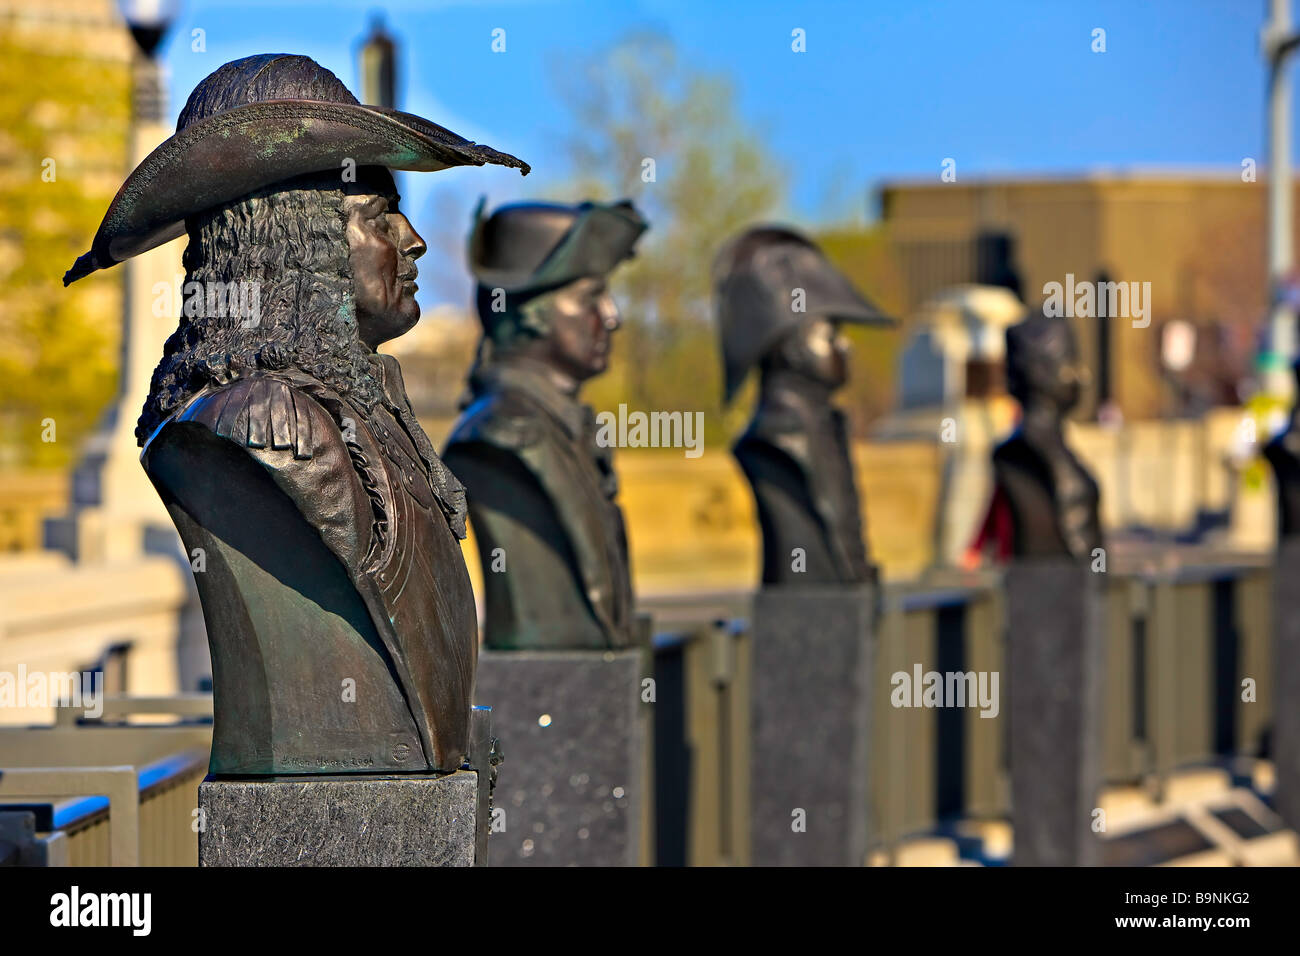 The Valiants Memorial. Busts depicting individuals who served Canada during the wars which fundamentally shaped - Stock Image